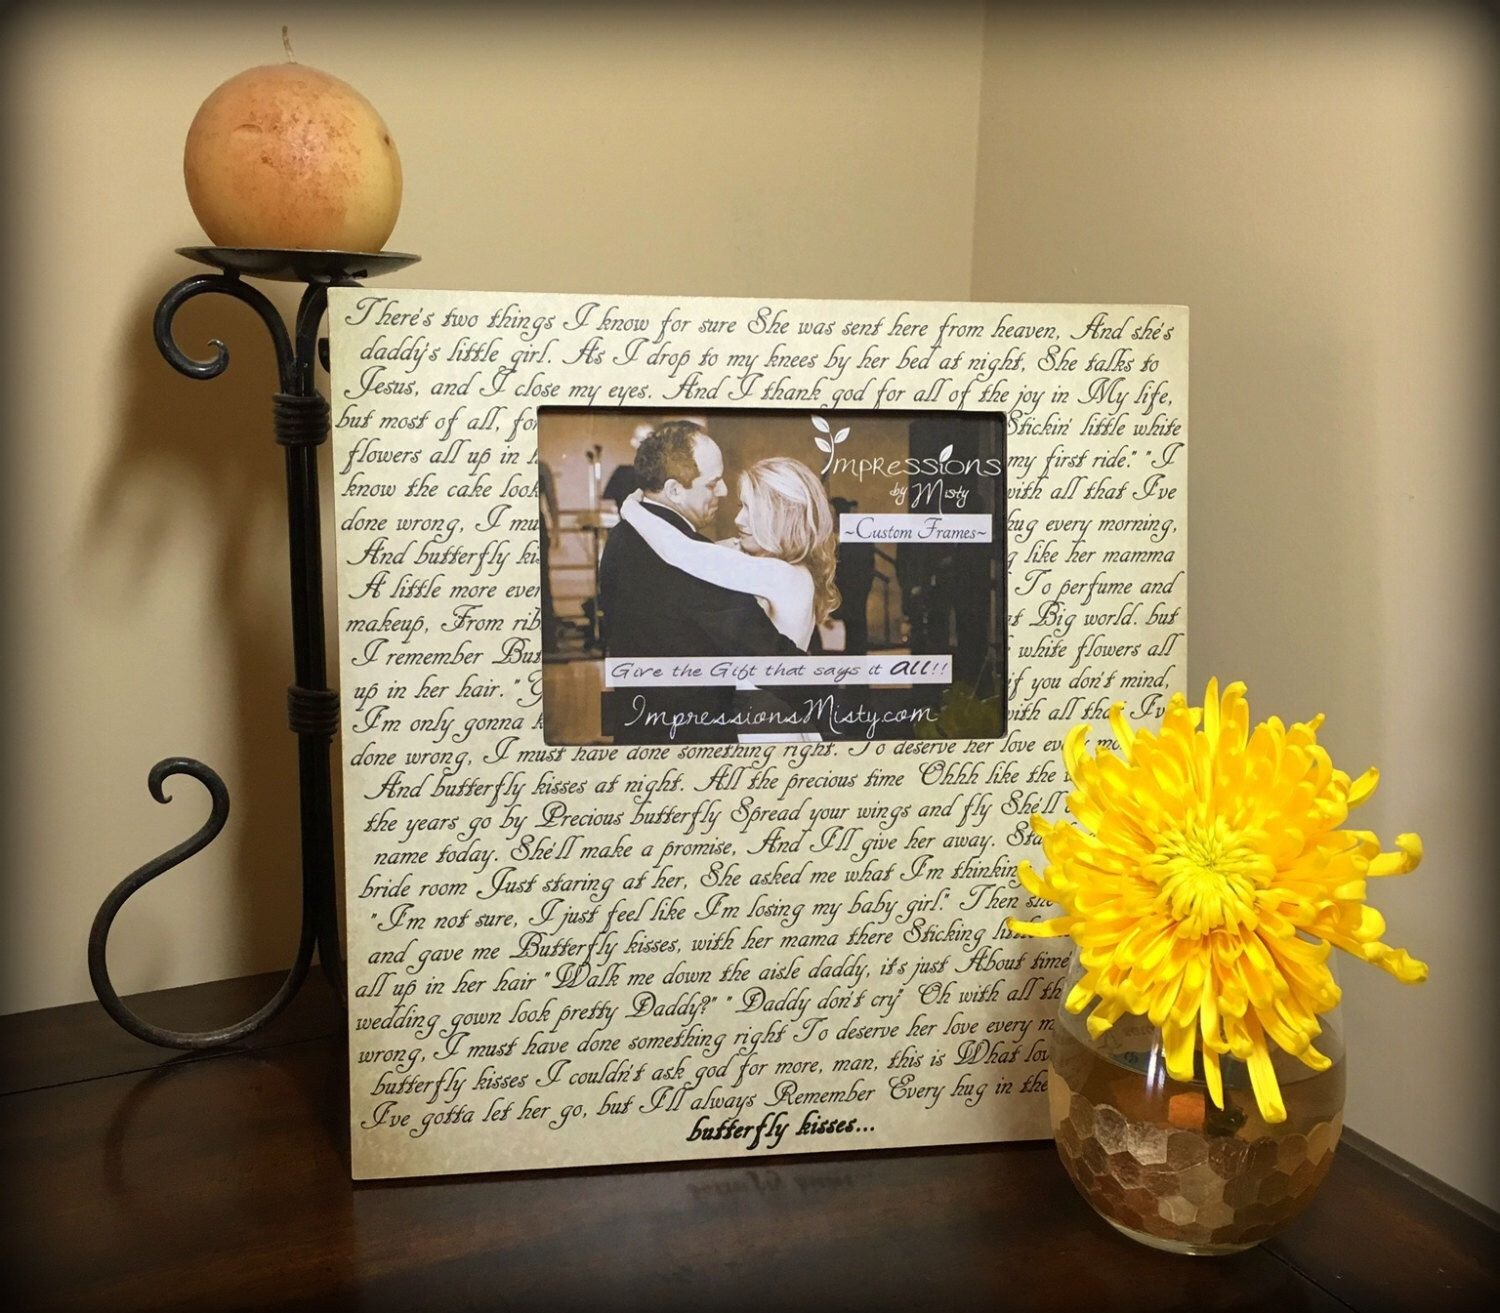 first year wedding anniversary gift ideas pinterest%0A music education resume